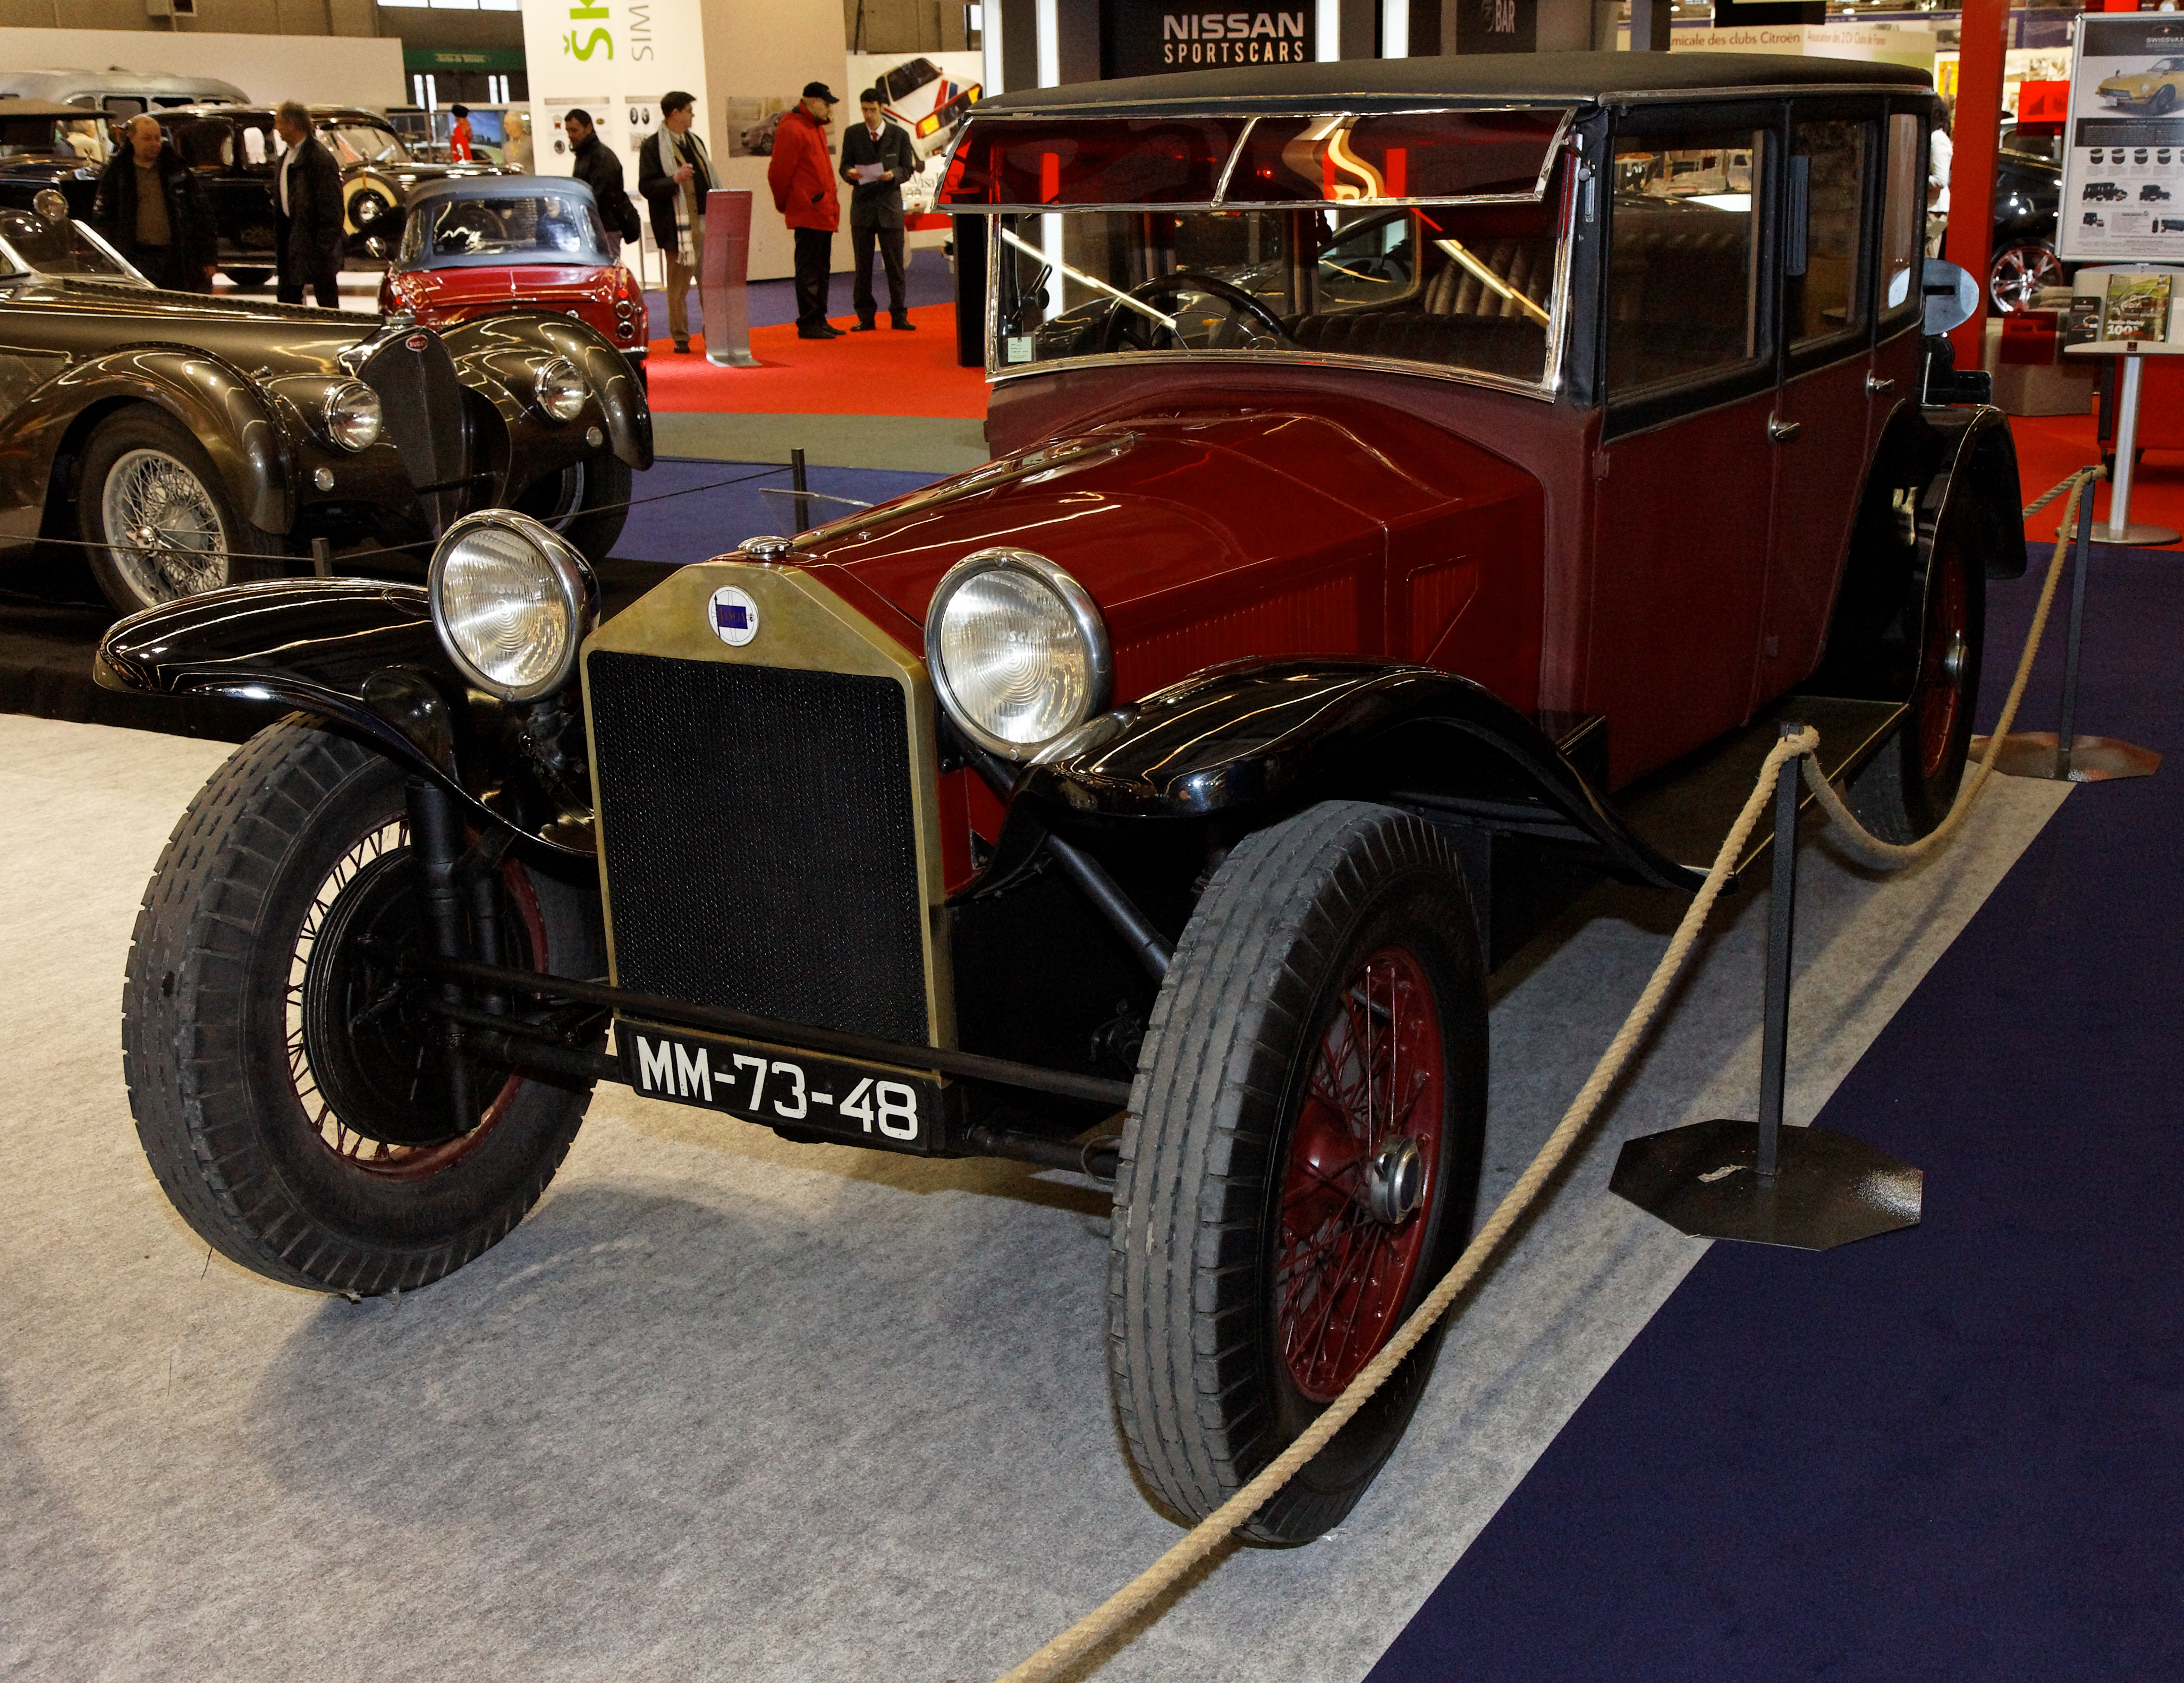 https://upload.wikimedia.org/wikipedia/commons/a/a6/R%C3%A9tromobile_2011_-_Lancia_Lambda_S%C3%A9rie_7_-_1928_-_001.jpg